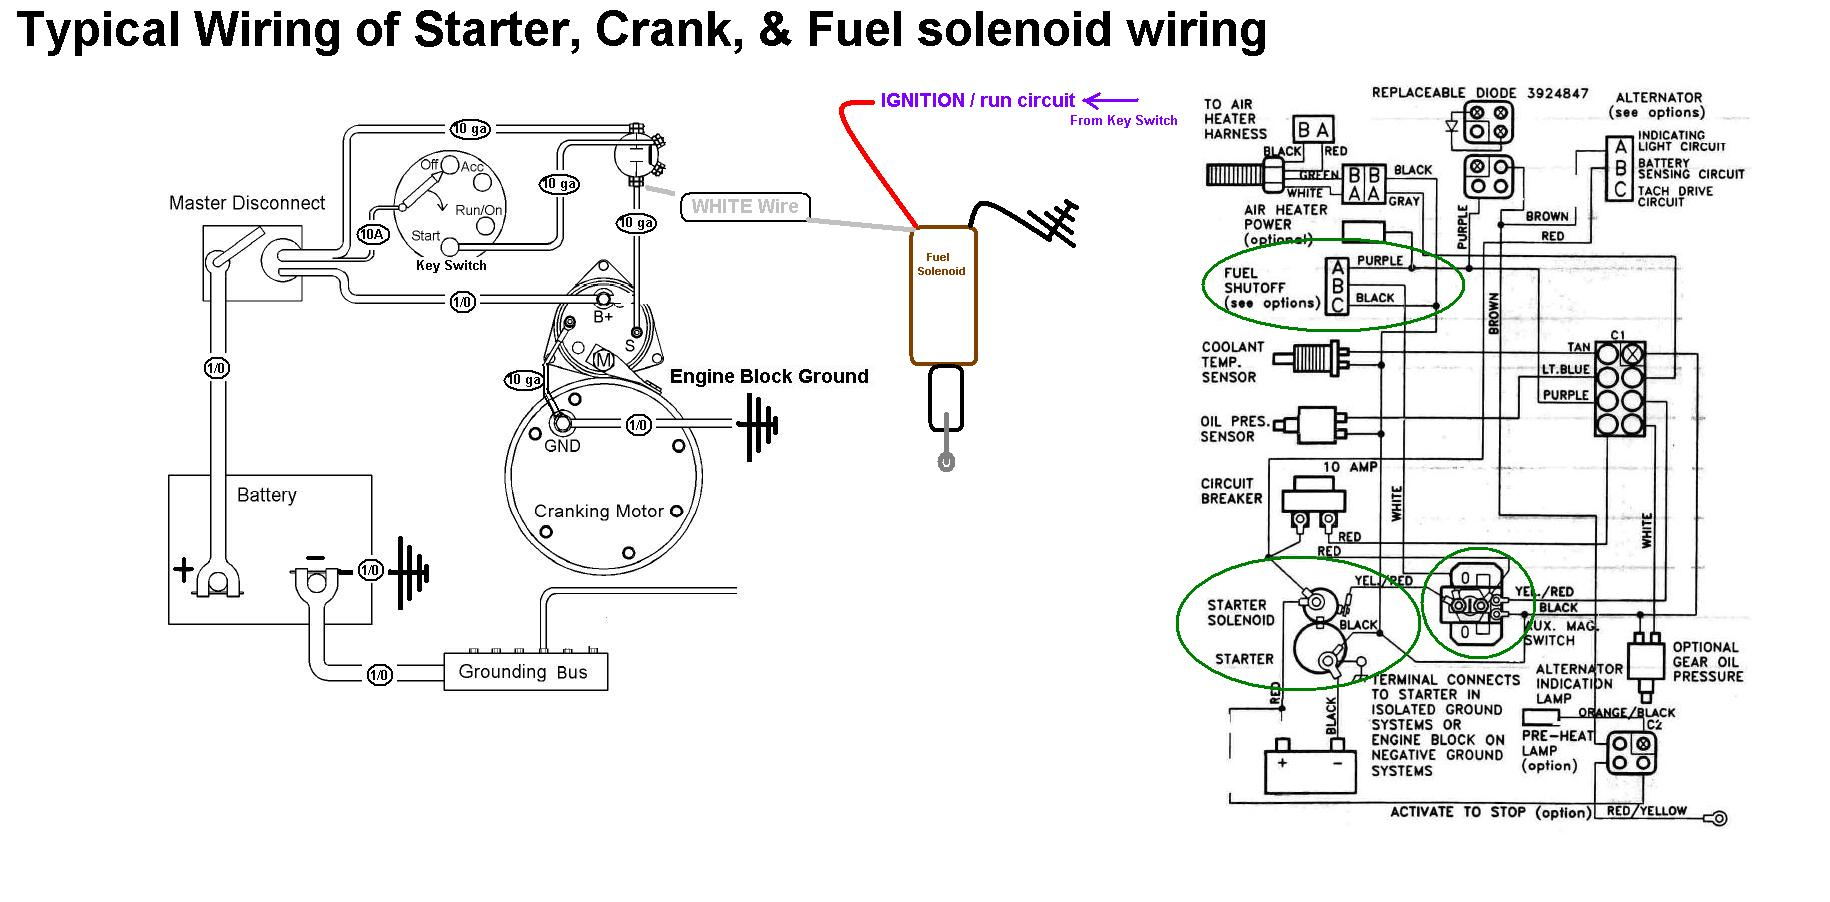 Starter Crank Fuel Shutoff Solenoid Wiring additionally Electrical  ponents Except Wiring moreover P 13054 John Deere D100 Series Steering Parts Diagram Sn Pre 700000 in addition Bobcat 743 Starter Wiring Diagram additionally Turf derrequipment. on kubota engine parts